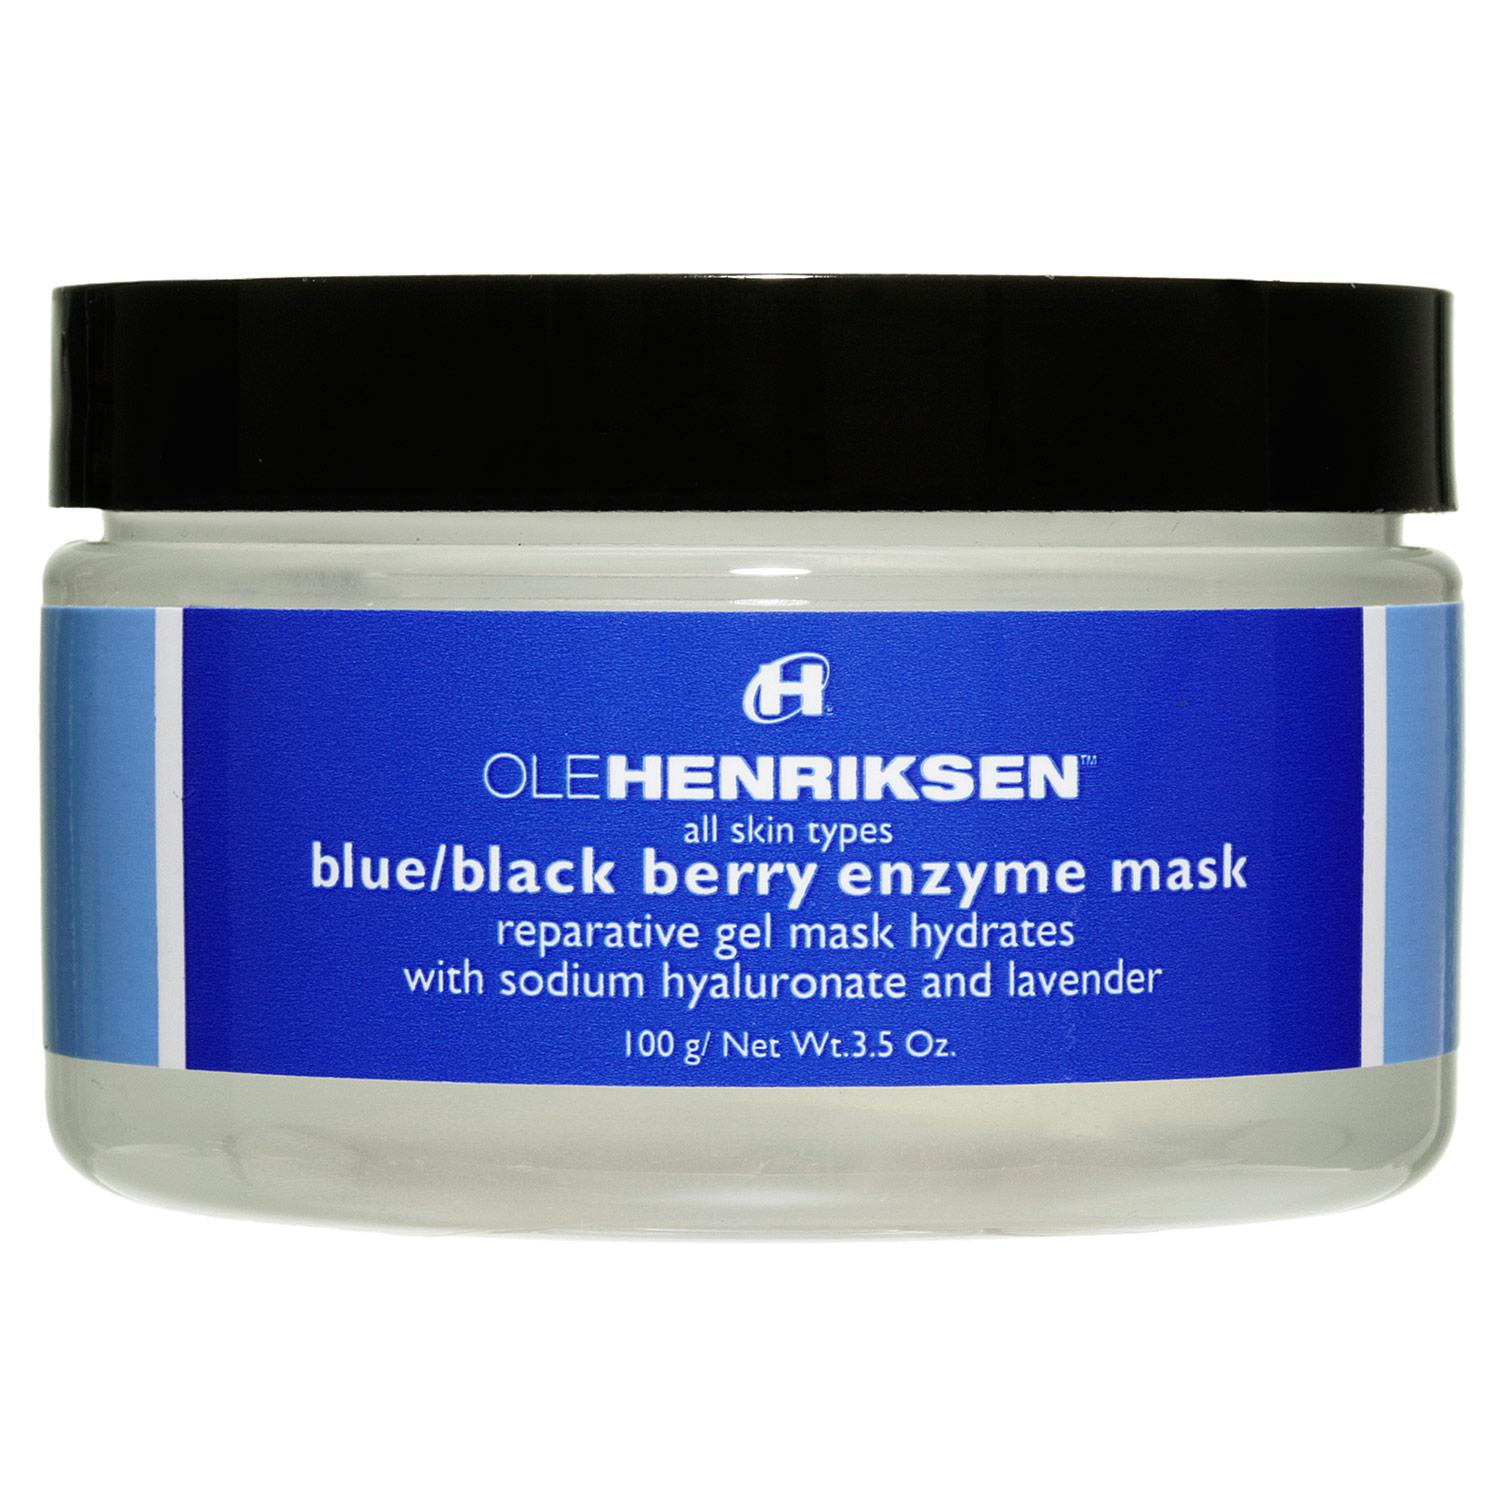 Blue/Black Berry Enzyme Mask